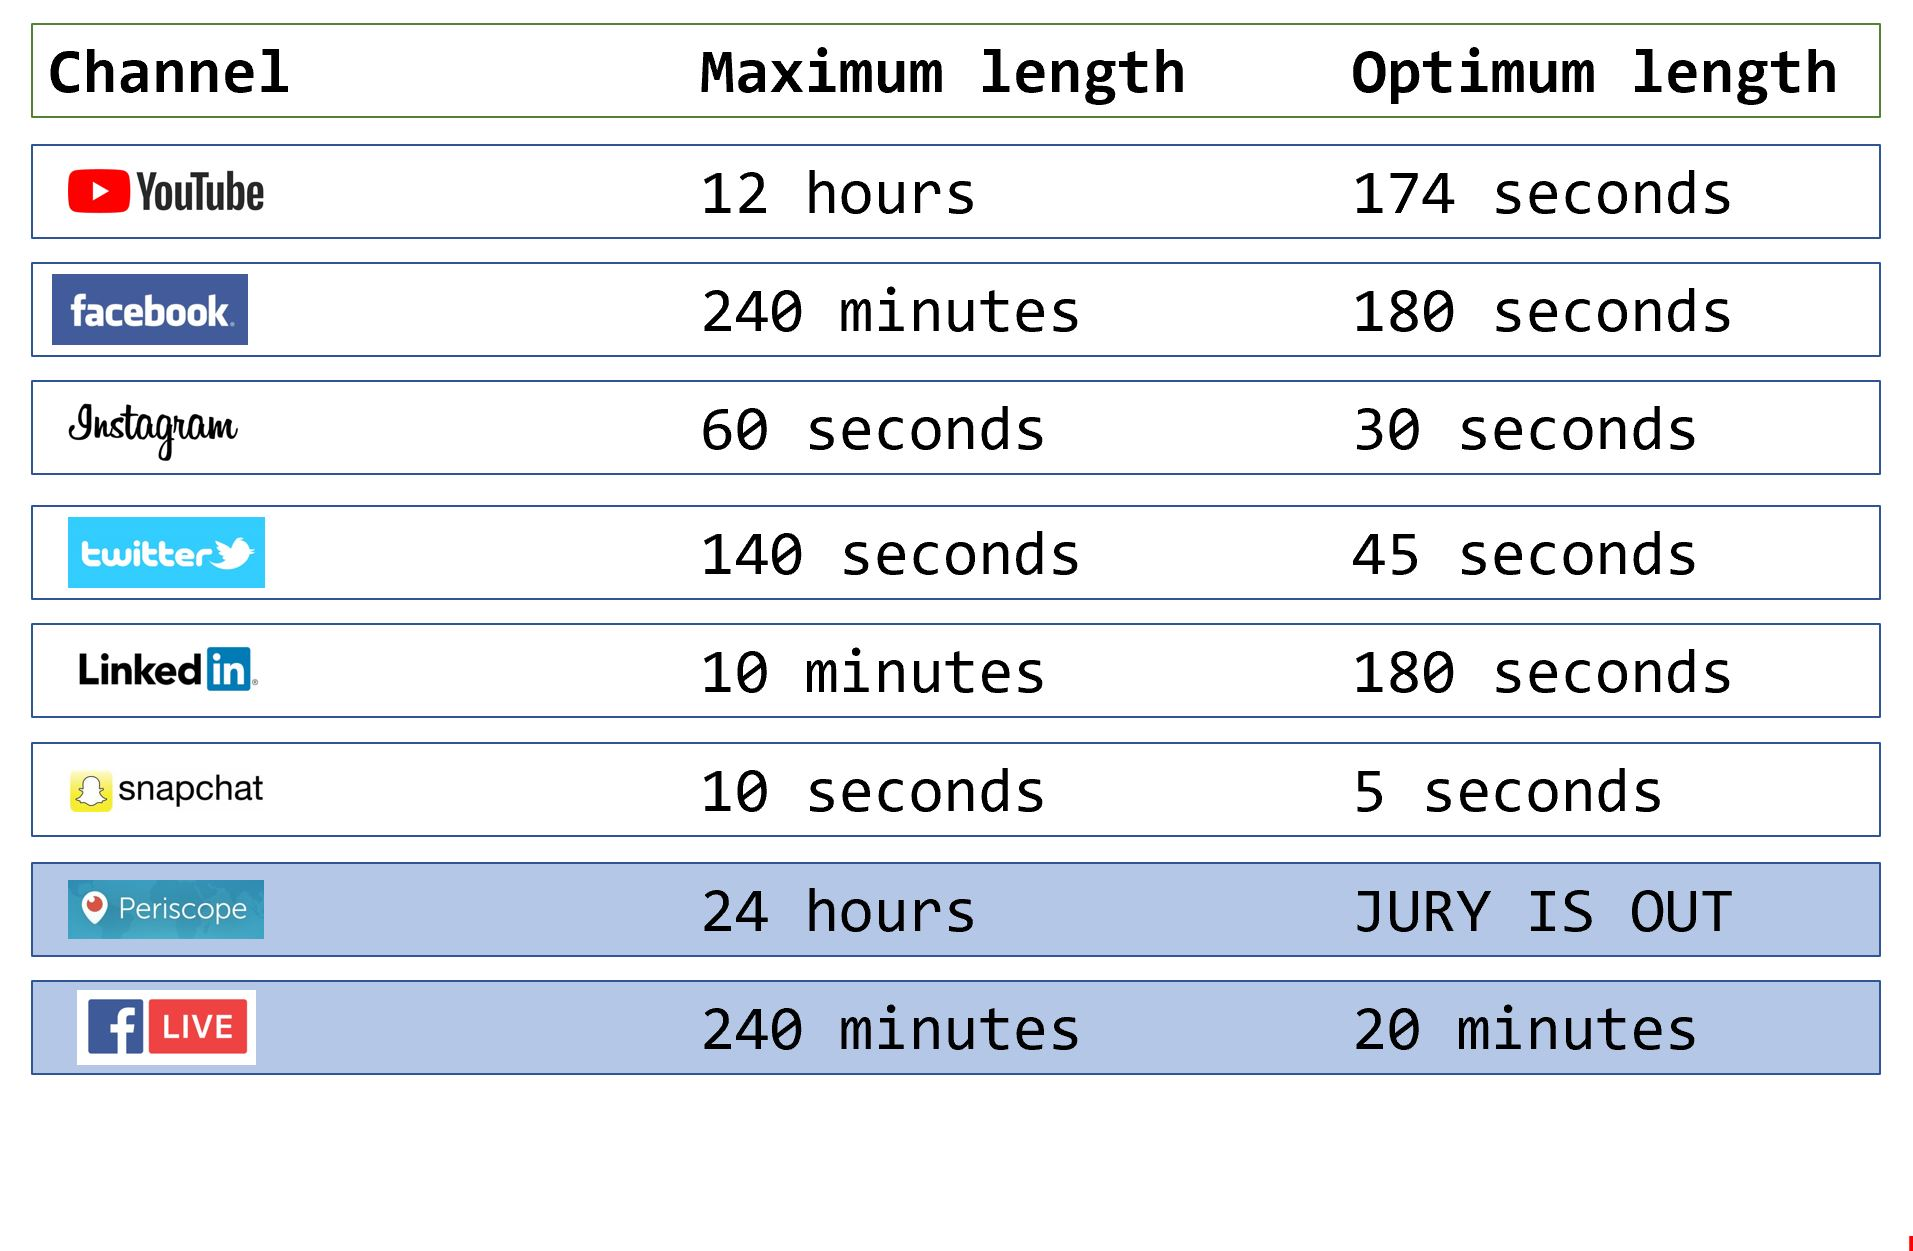 VIDEO CHANGE: What are the optimum video lengths for social